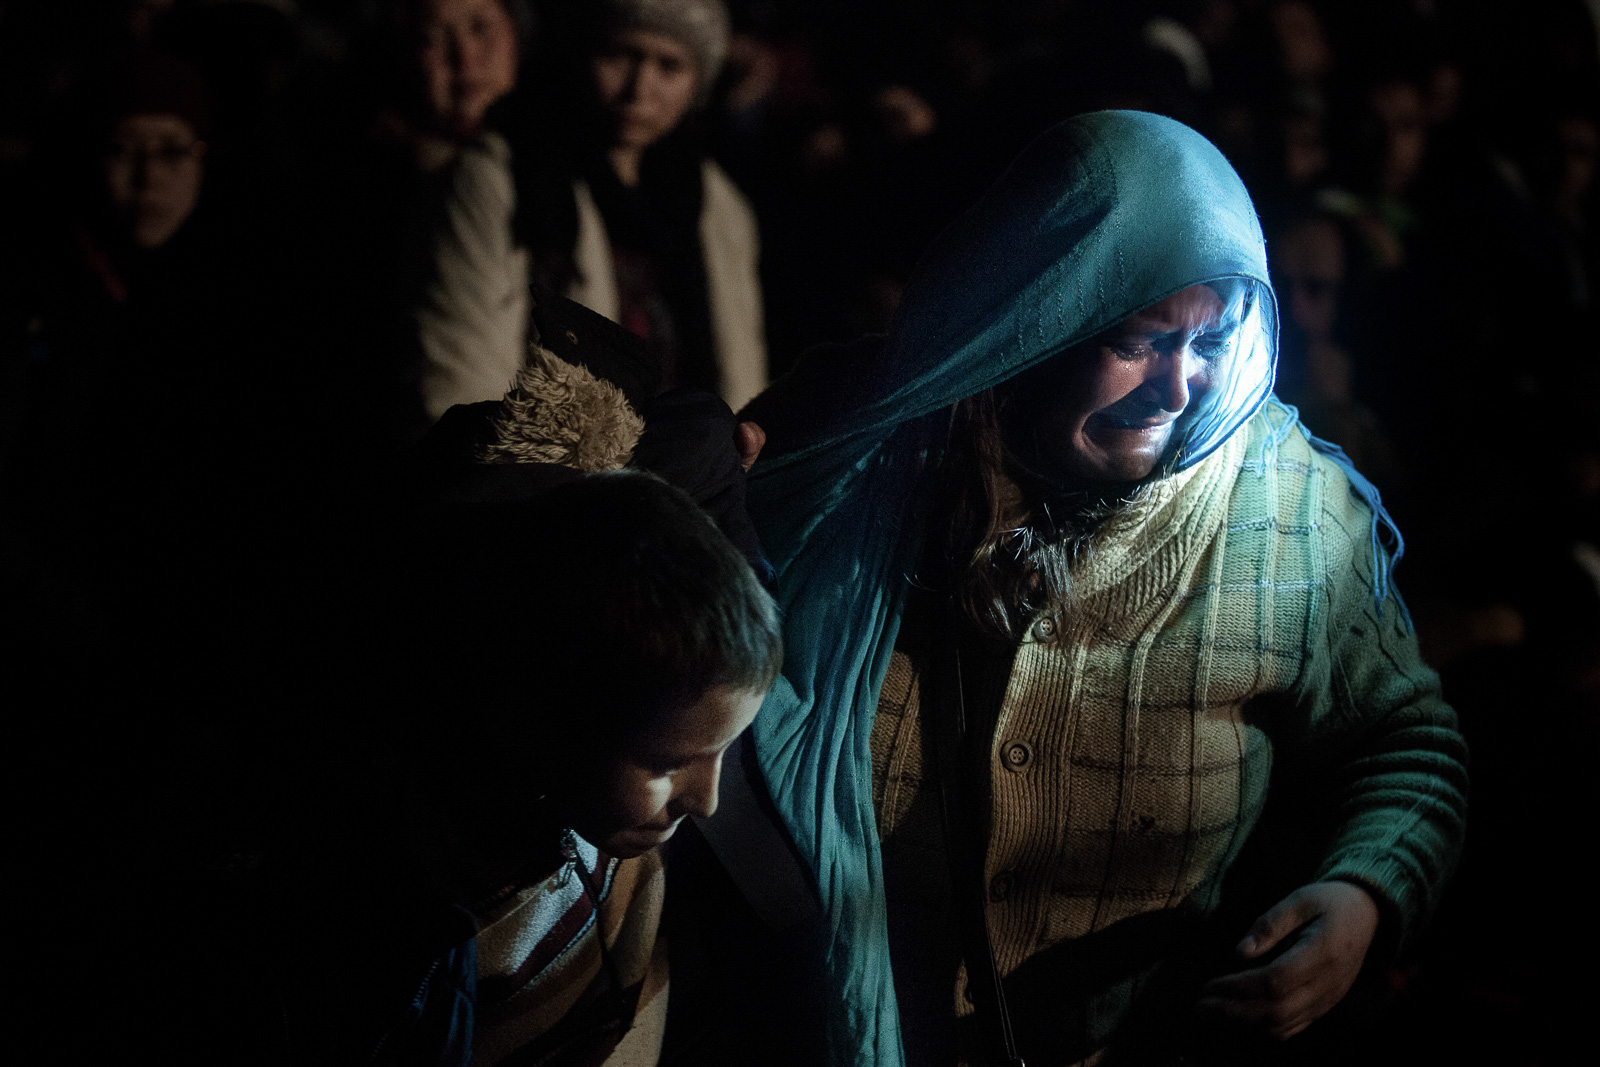 Šentilj, Slovenia - October 29, 2015: A refugee is crying in frustration after lining up for at least a whole day with her child, to cross the border with Austria in Šentilj, Slovenia on October 29, 2015.